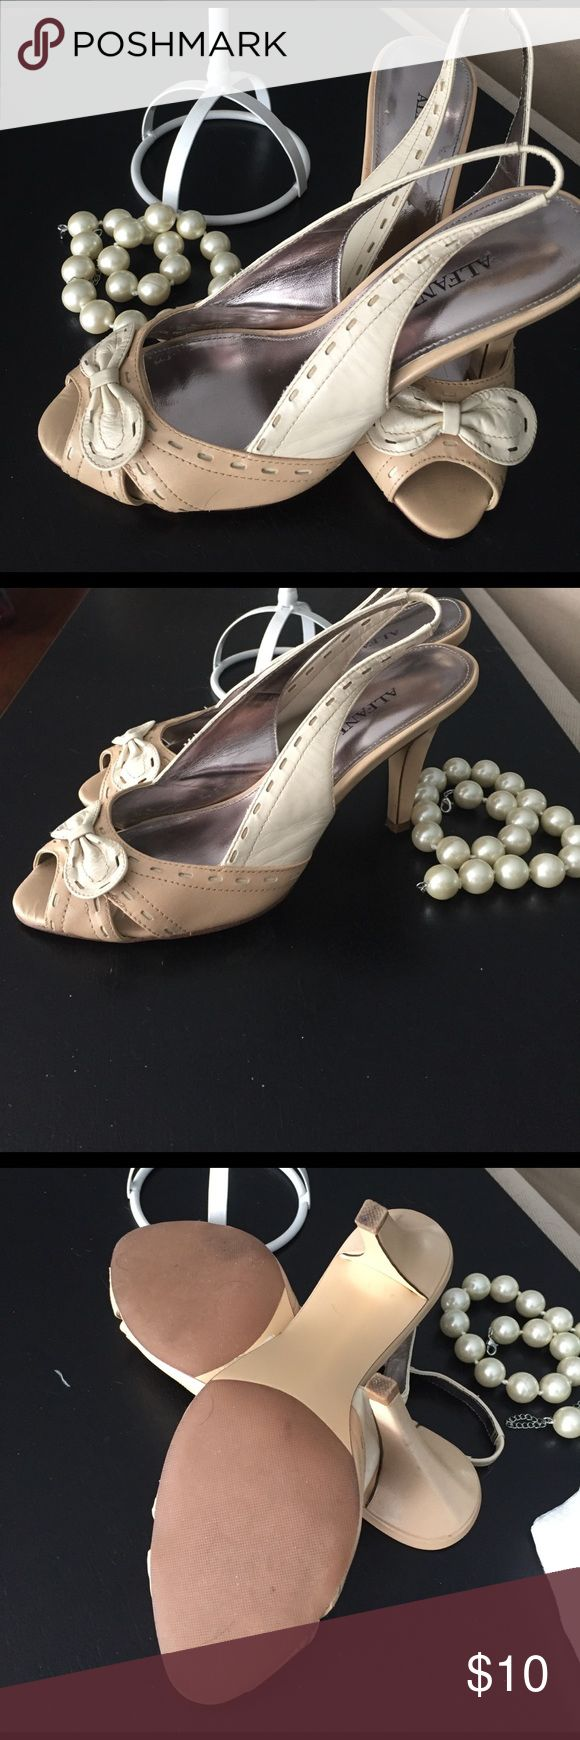 Alfani Women's Slingback Shoes Size 6 These Alfani Slingbacks are gently used. In excellent condition. Beige and cream with adorable cream bow on front.  3 1/2 inch heel. Alfani Shoes Heels